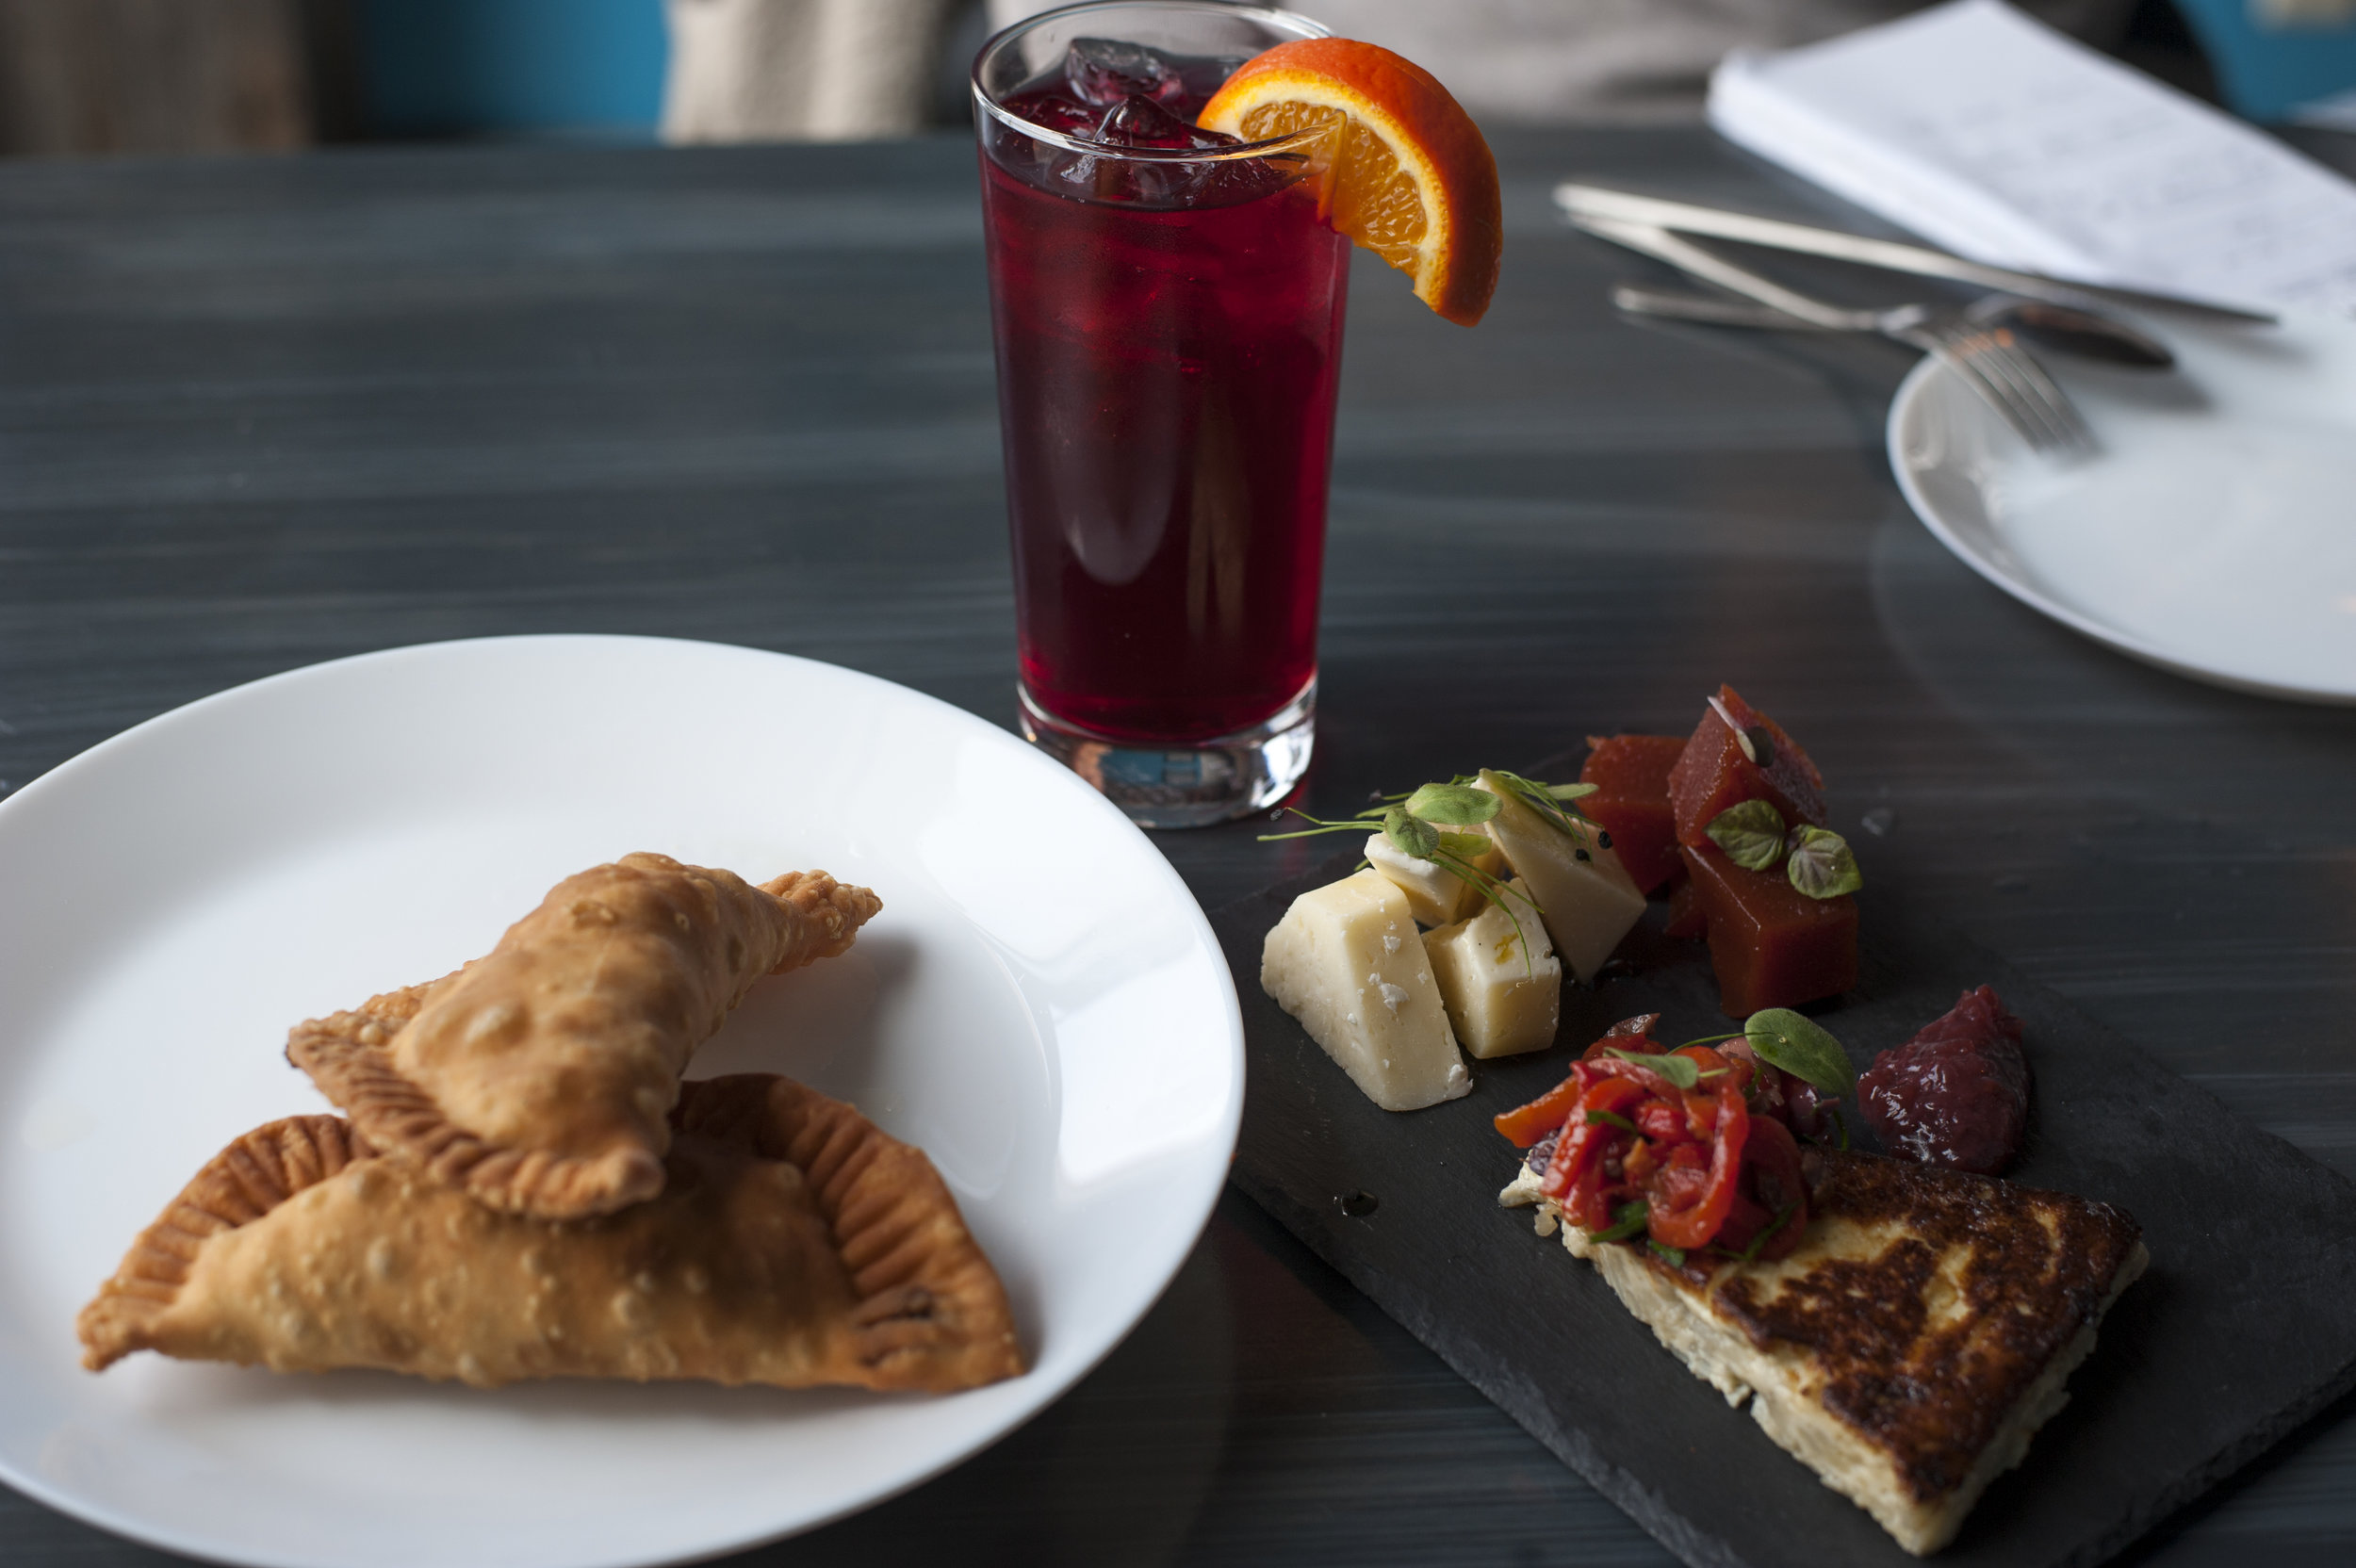 Classic baked Empanadas are shown with the Guava Plate, a medley of sweet and savory sensations, alongside a non-alcoholic refreshing sangria.